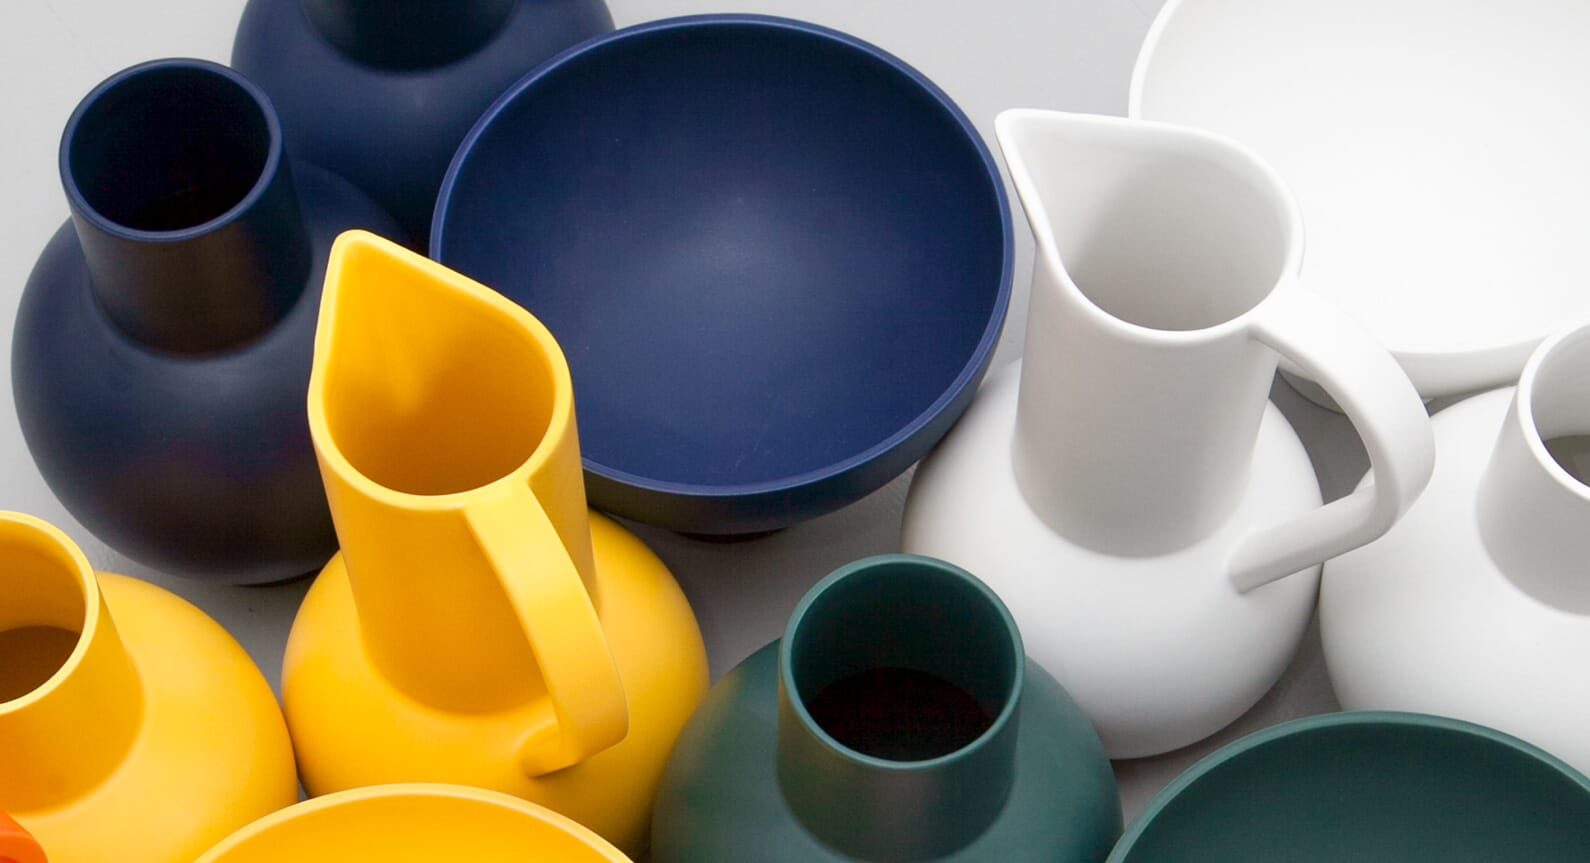 The Colourful Scandinavian Ceramics of Raawii